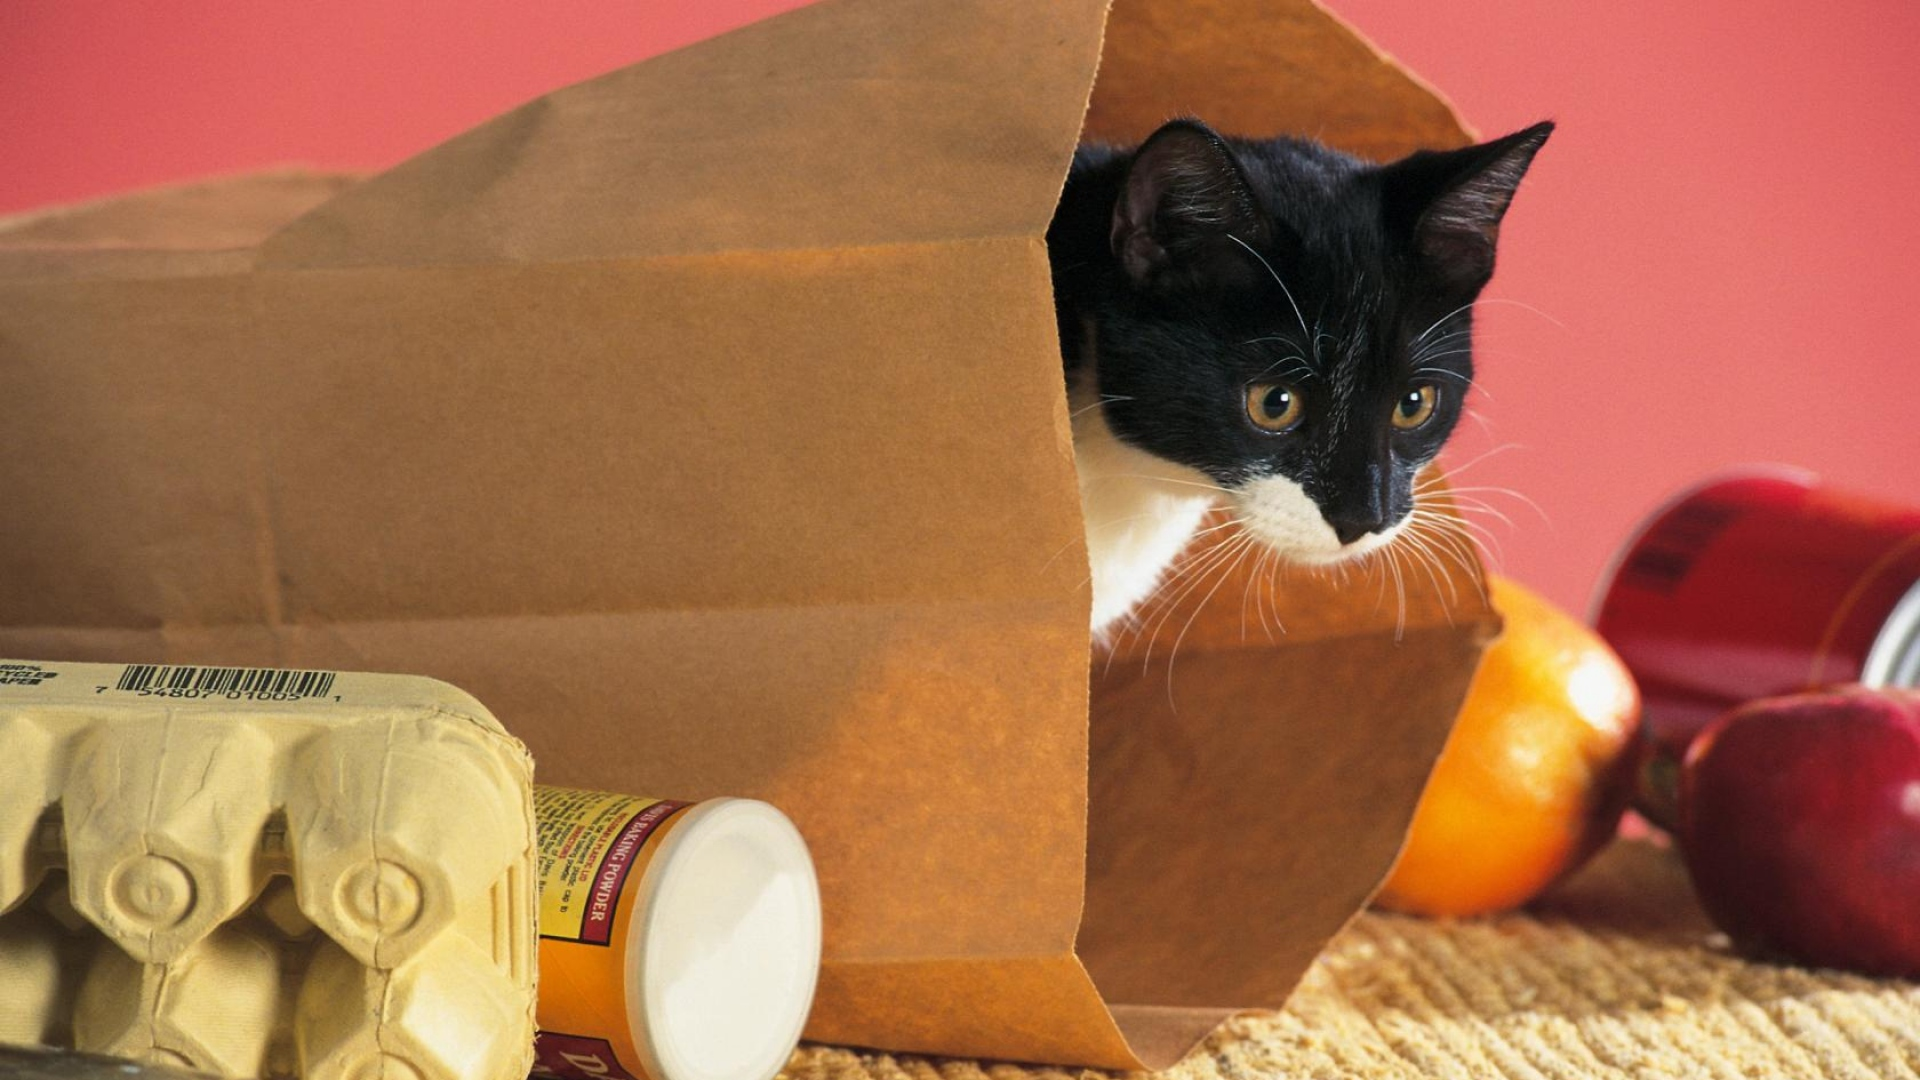 cat-package-food-climbing-curiosity-1920x1080